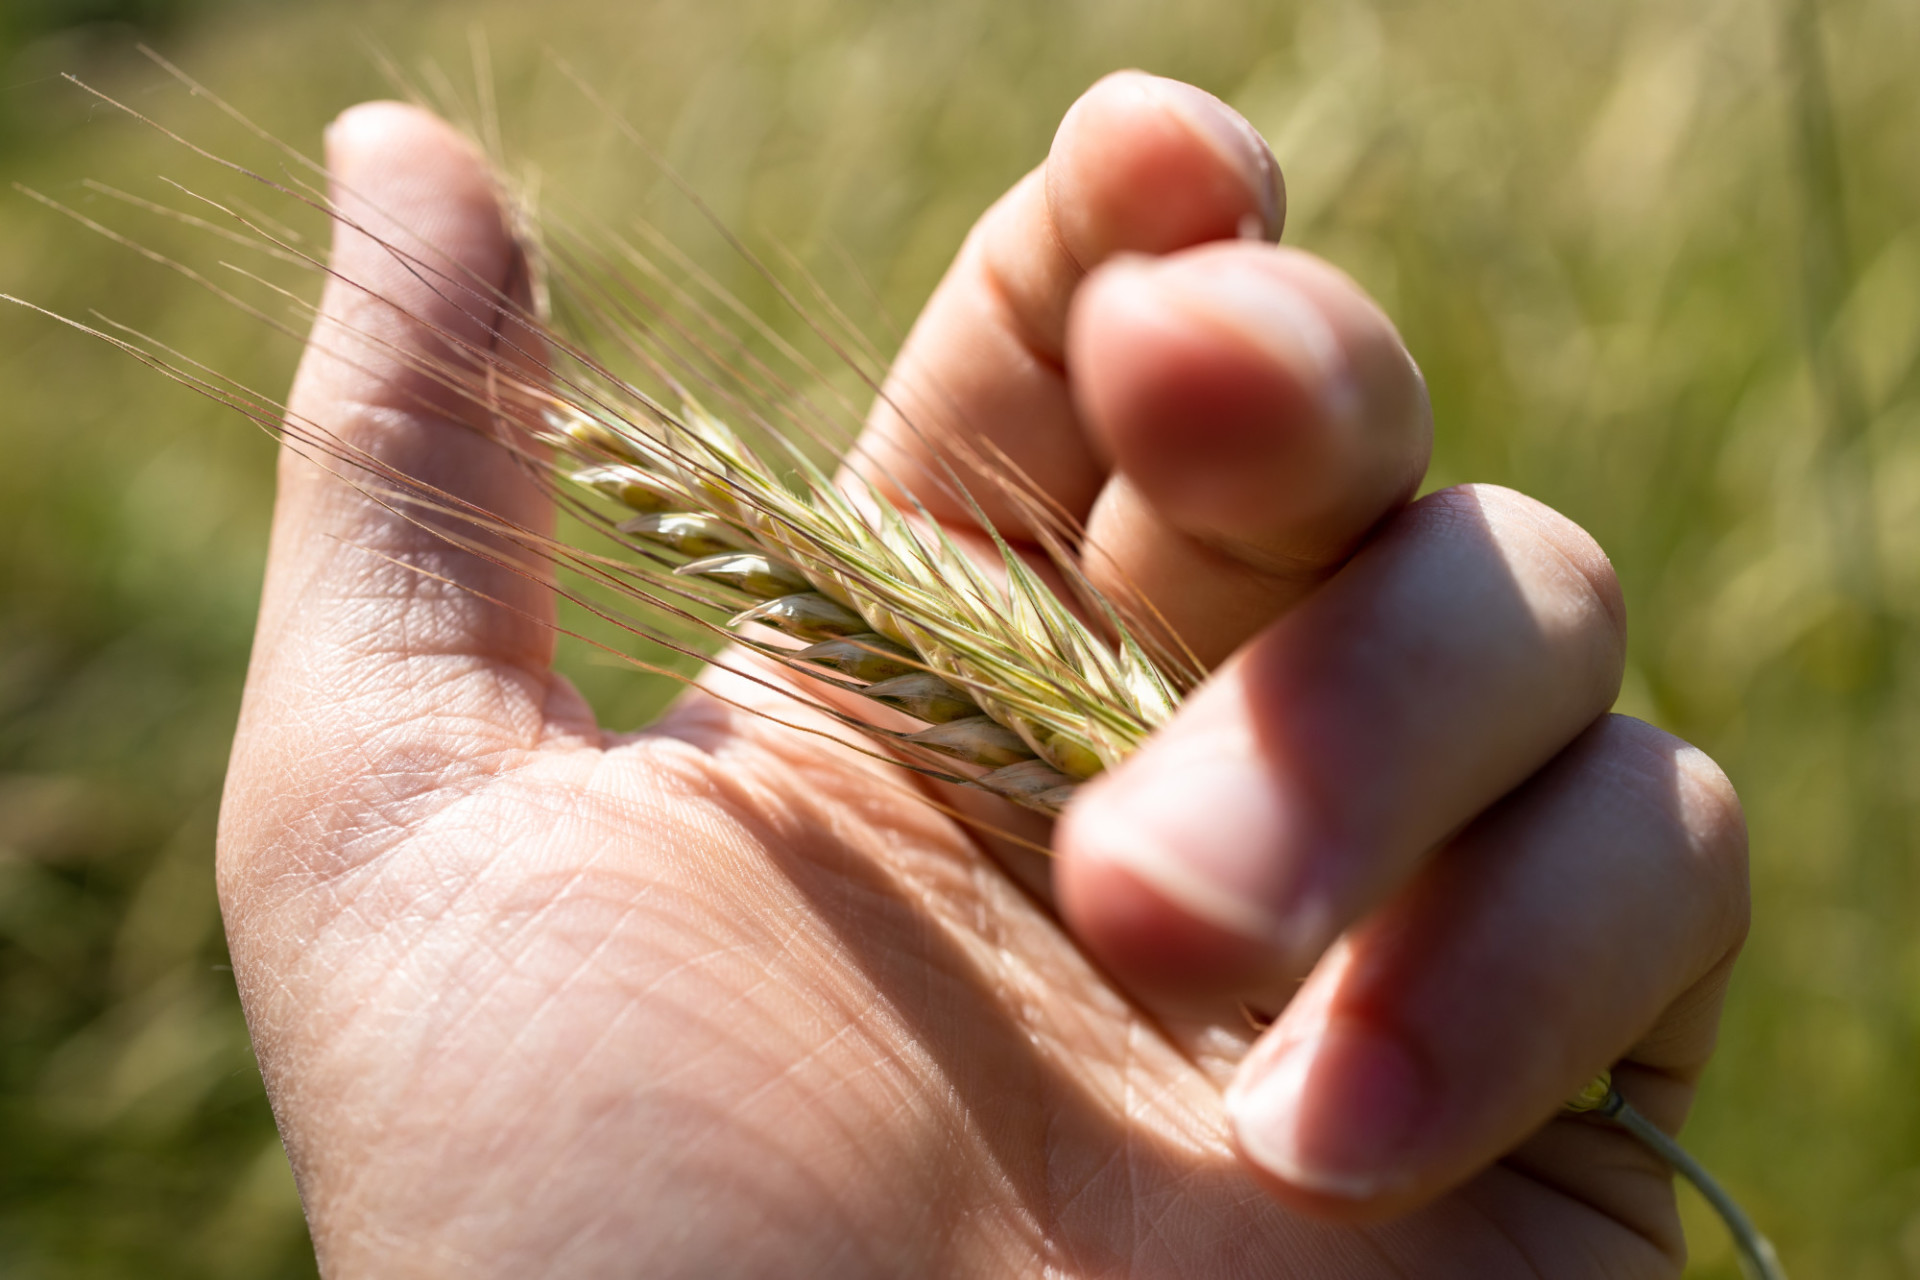 Ear of wheat in the hand